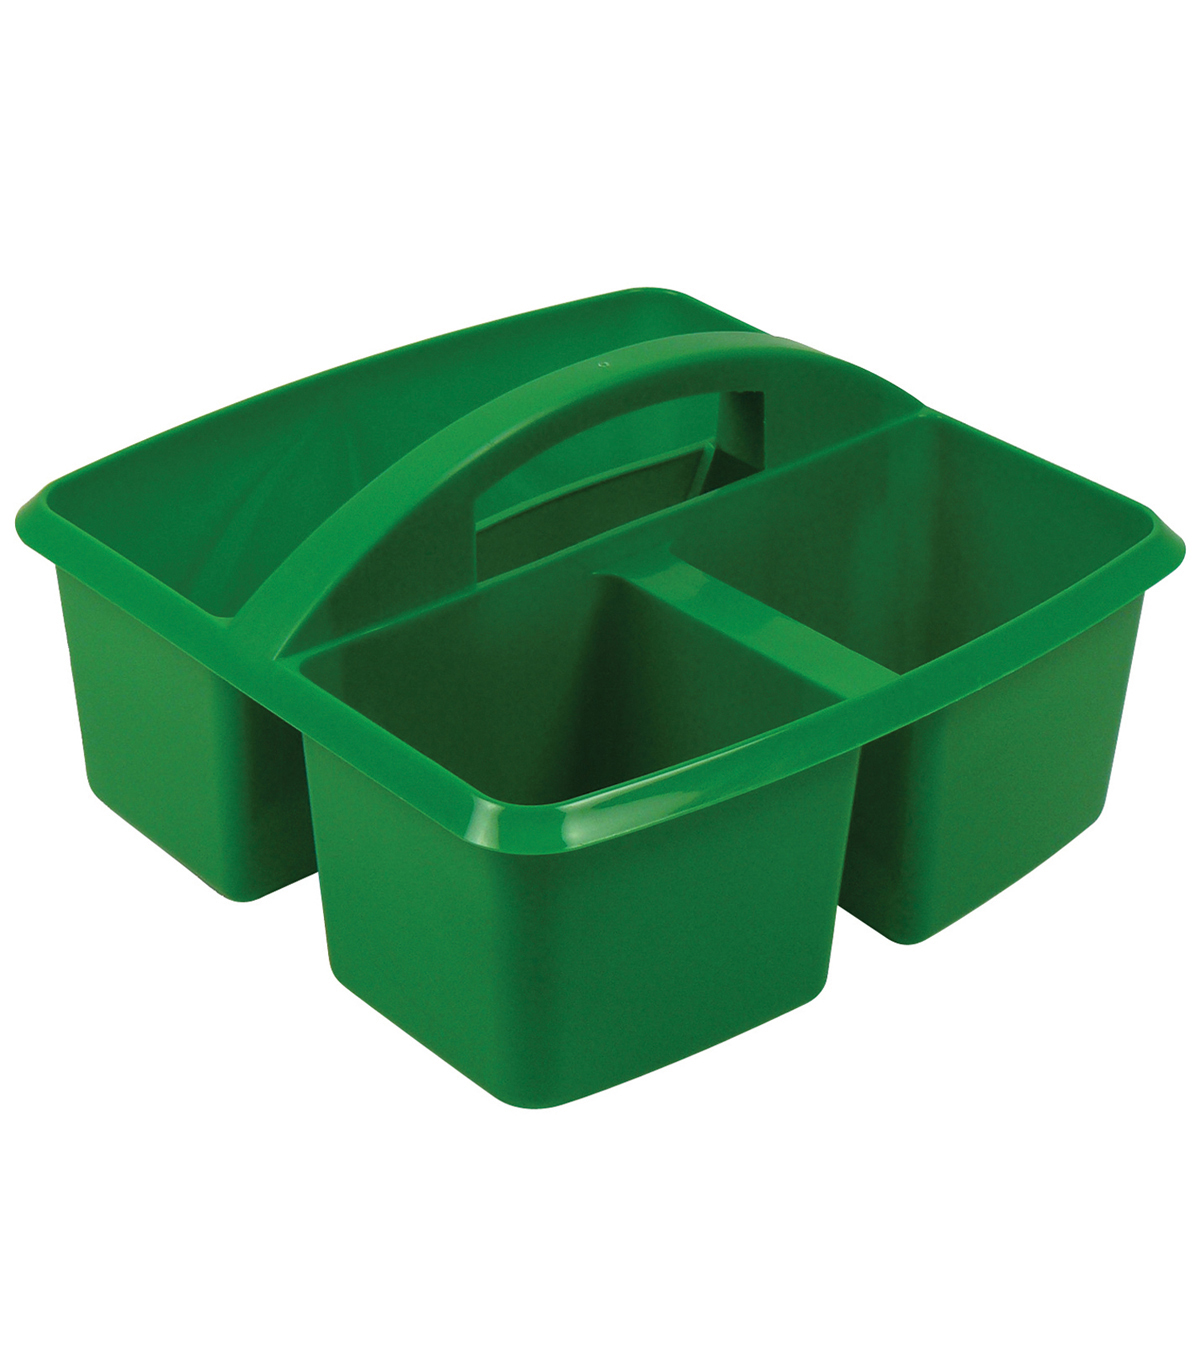 Romanoff Products Small Utility Caddy, Pack of 6, Green